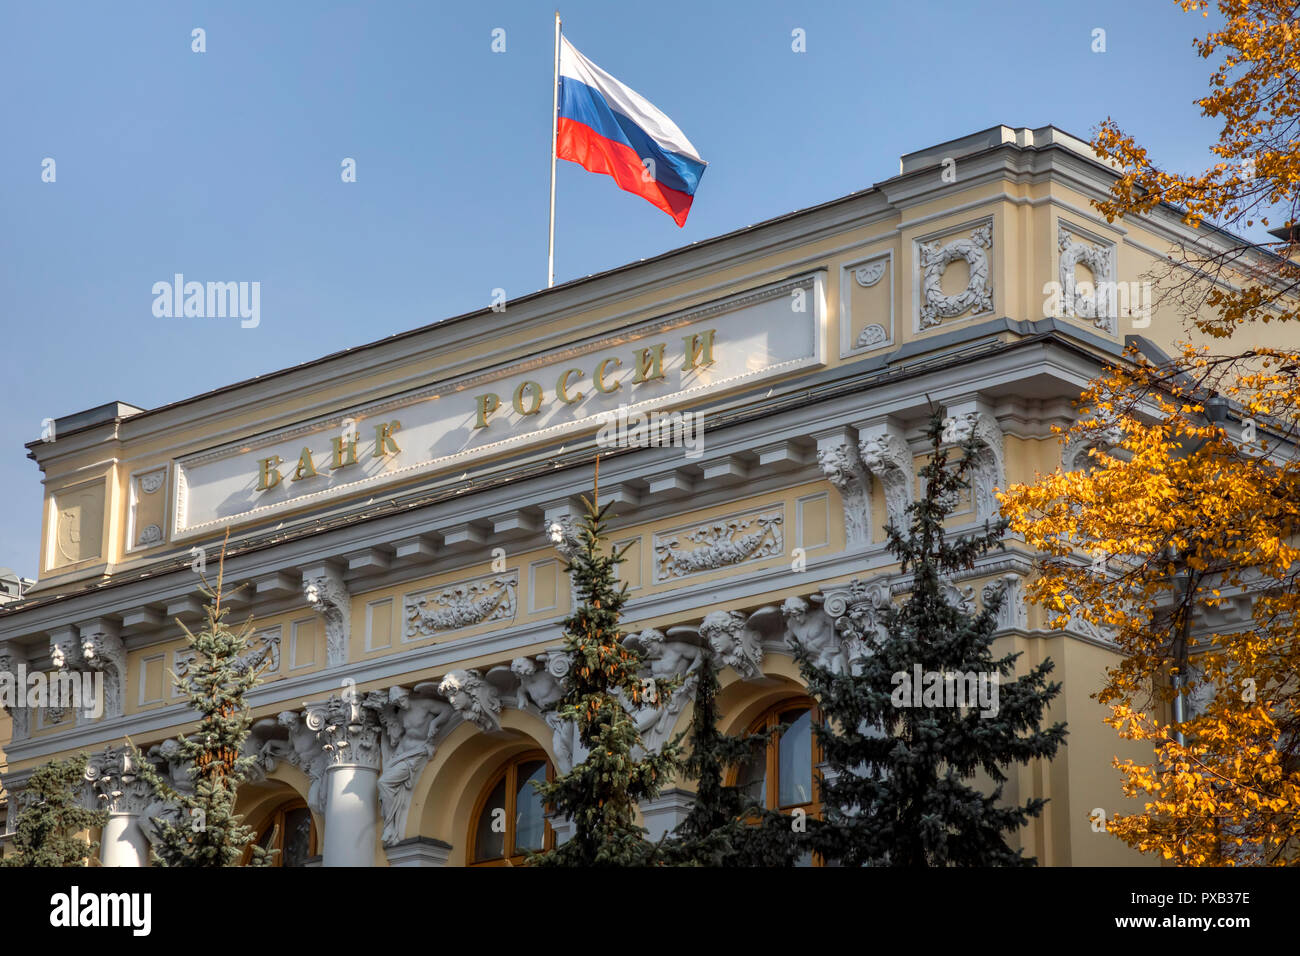 View of the facade of the Central Bank of the Russian Federation at 12 Neglinnaya Street in the center of Moscow, Russia - Stock Image